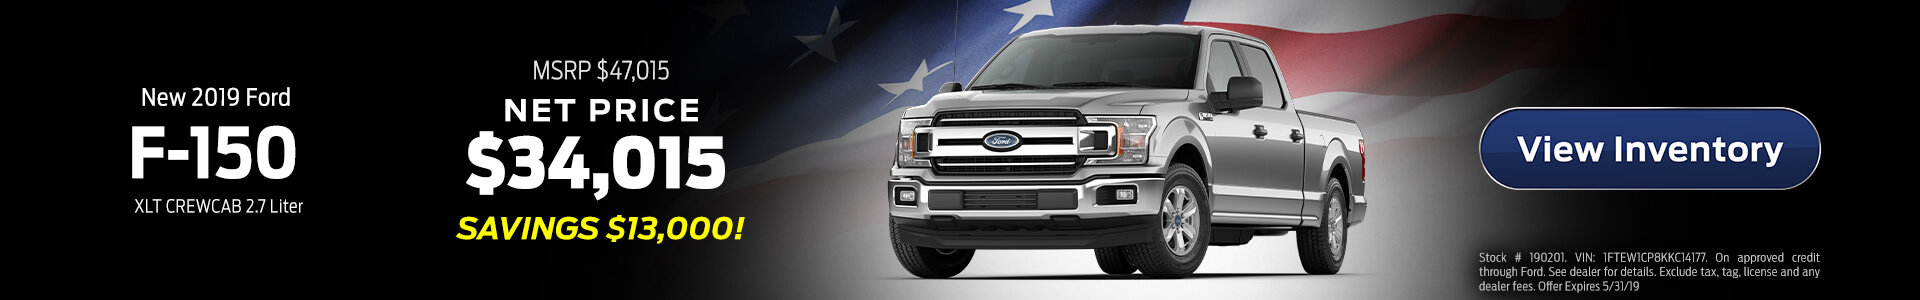 2019 Ford F-150 $34,015 Purchase